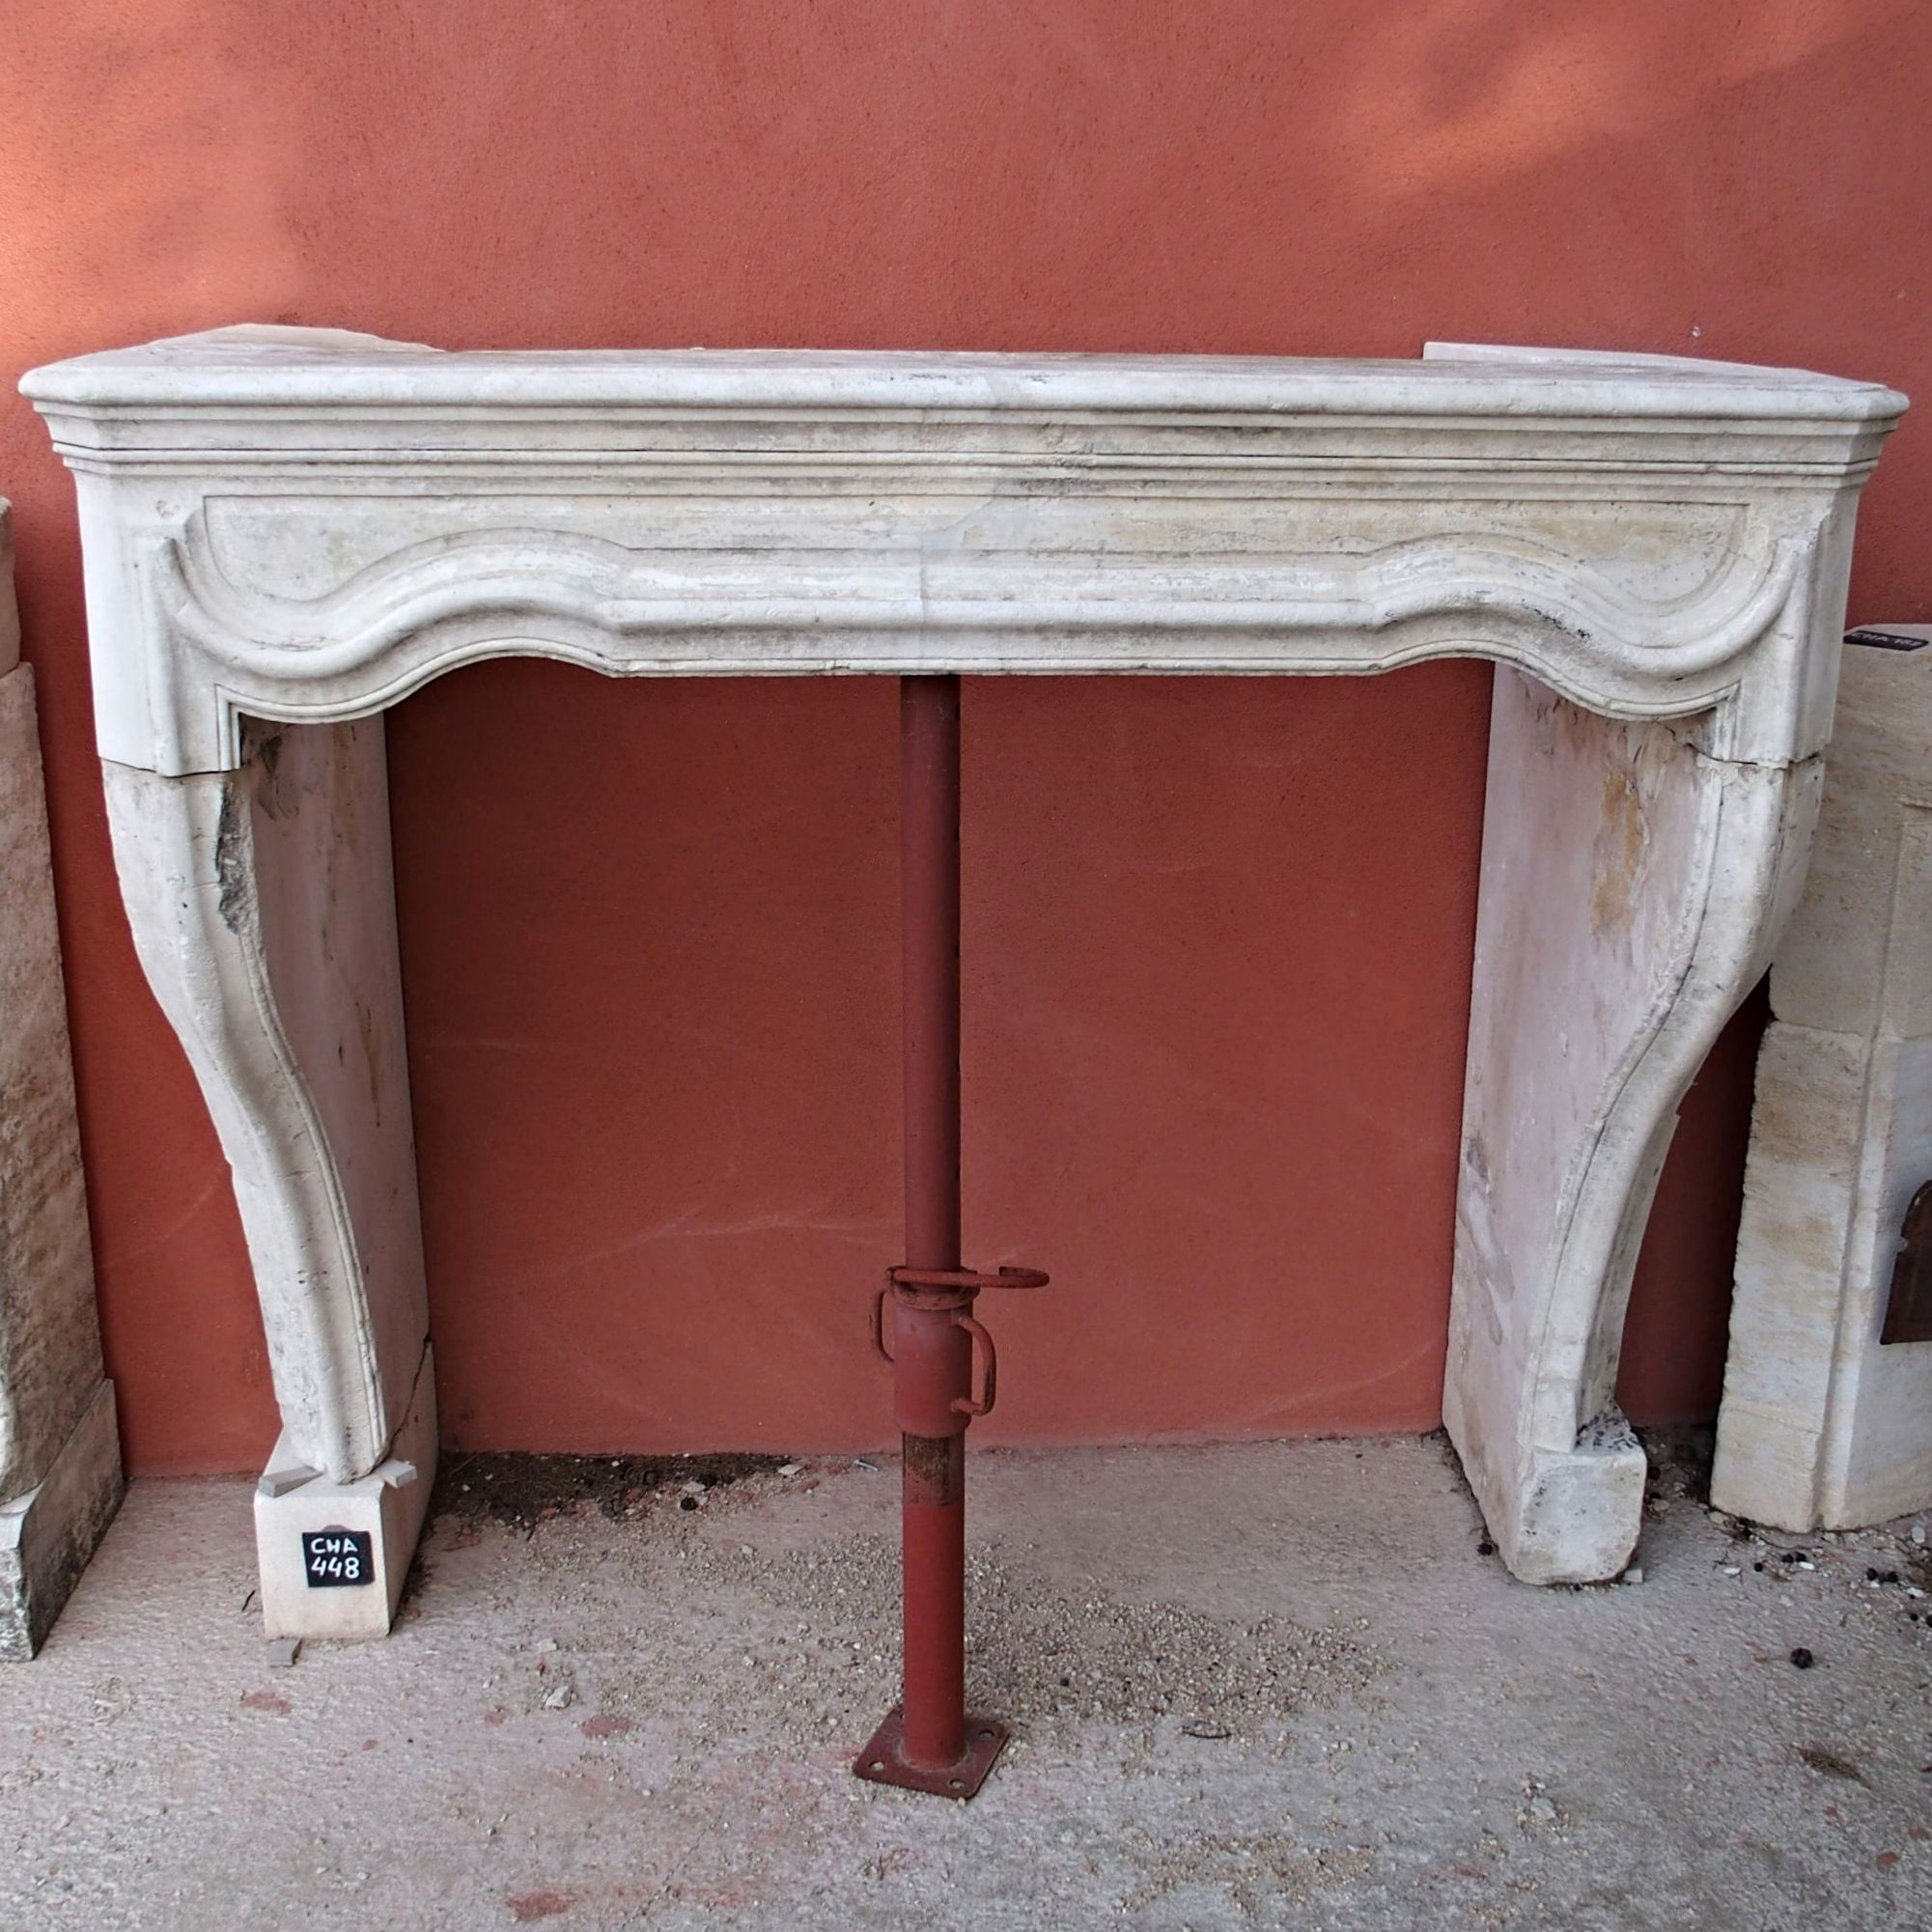 Old fireplace made of white stone - an old stone fireplace with a refined style with curves.